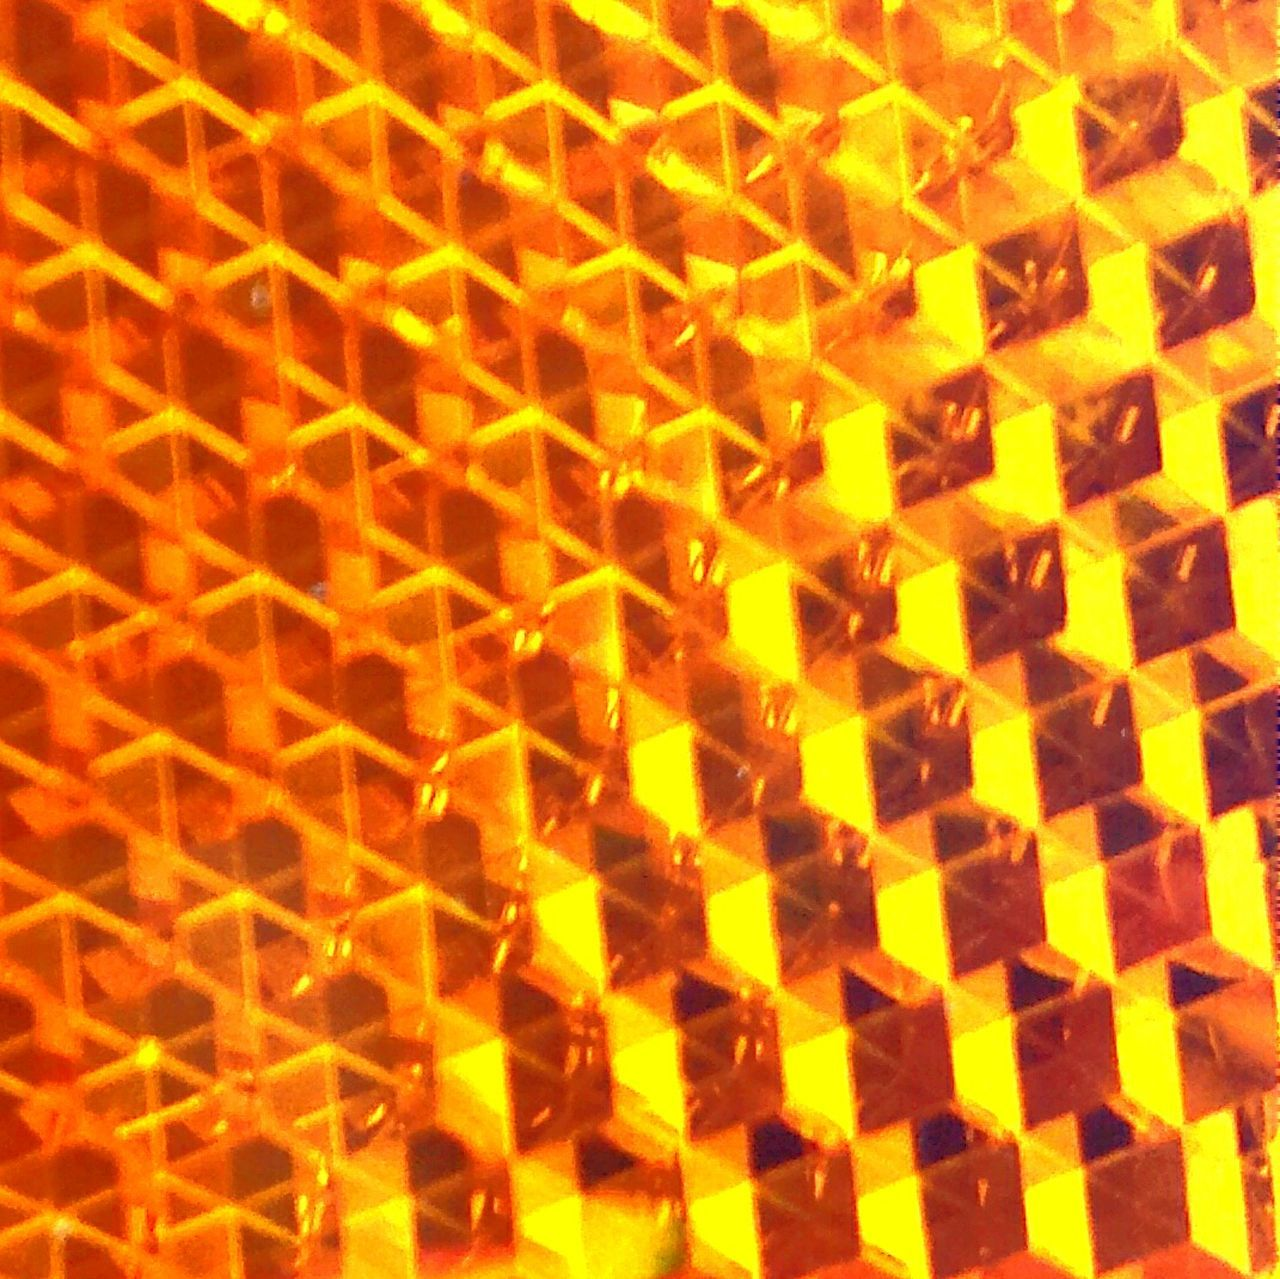 Turn signal (left) Bored On A Break Innovating Closeup Working Observing Light And Shadow Artphotography Urban Filter 4 Cubes